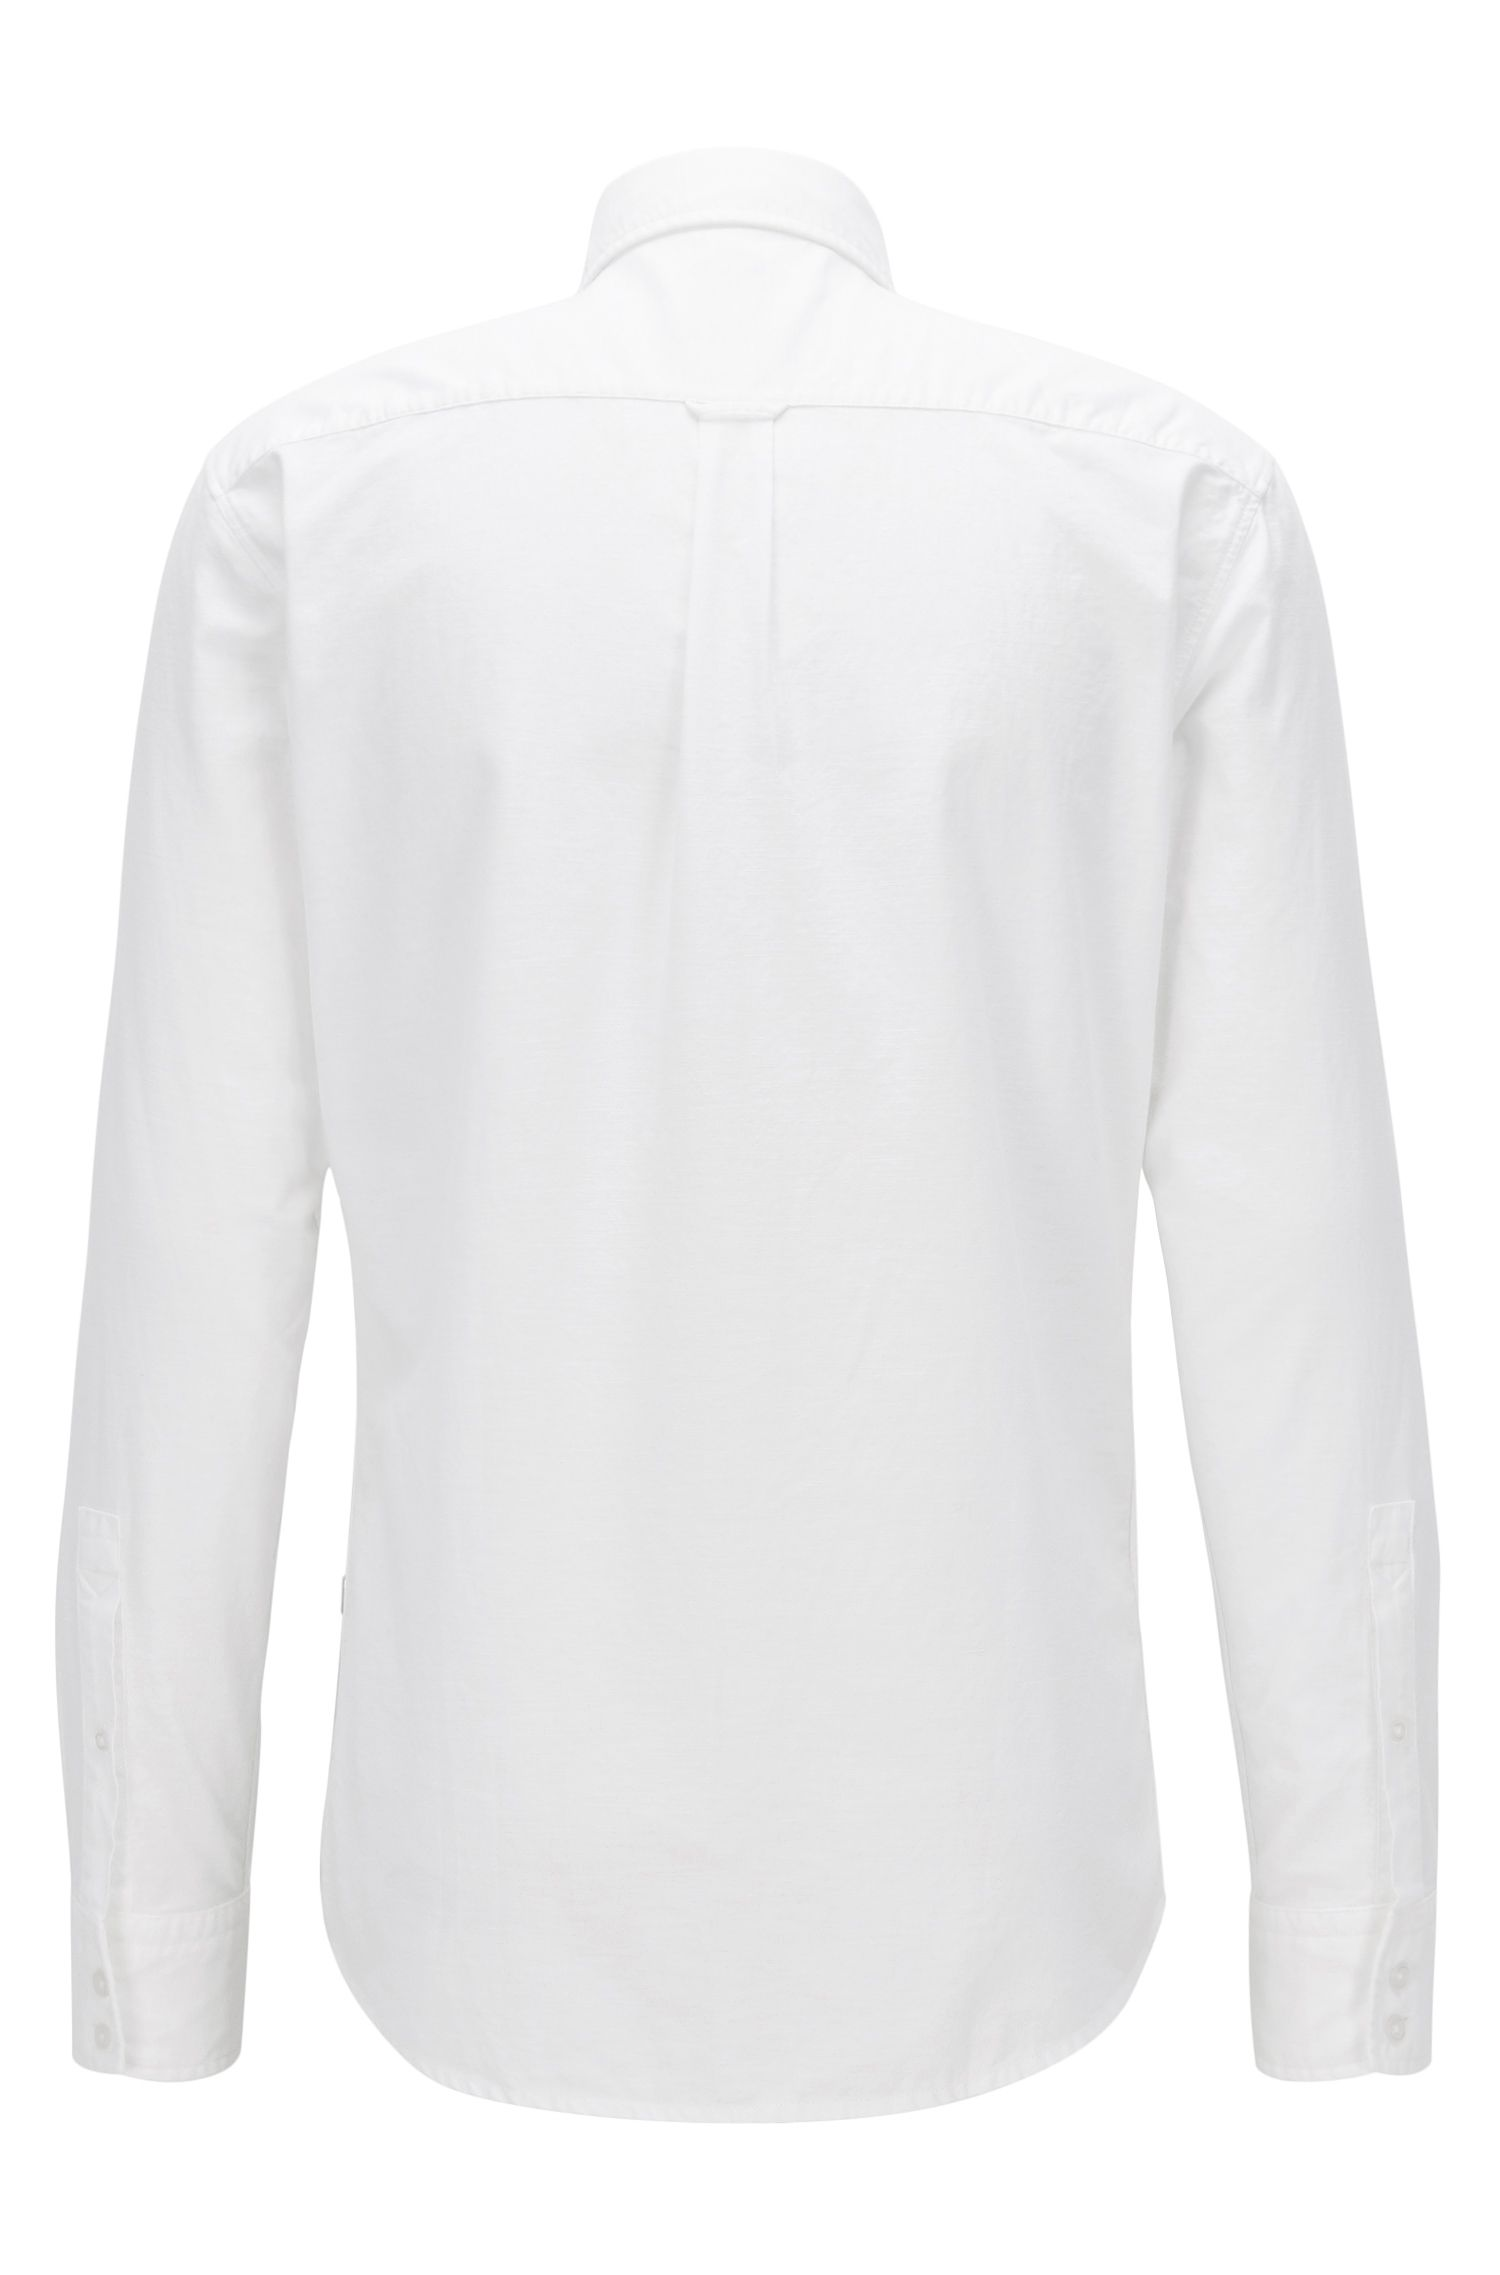 Peached cotton Oxford shirt in a slim fit